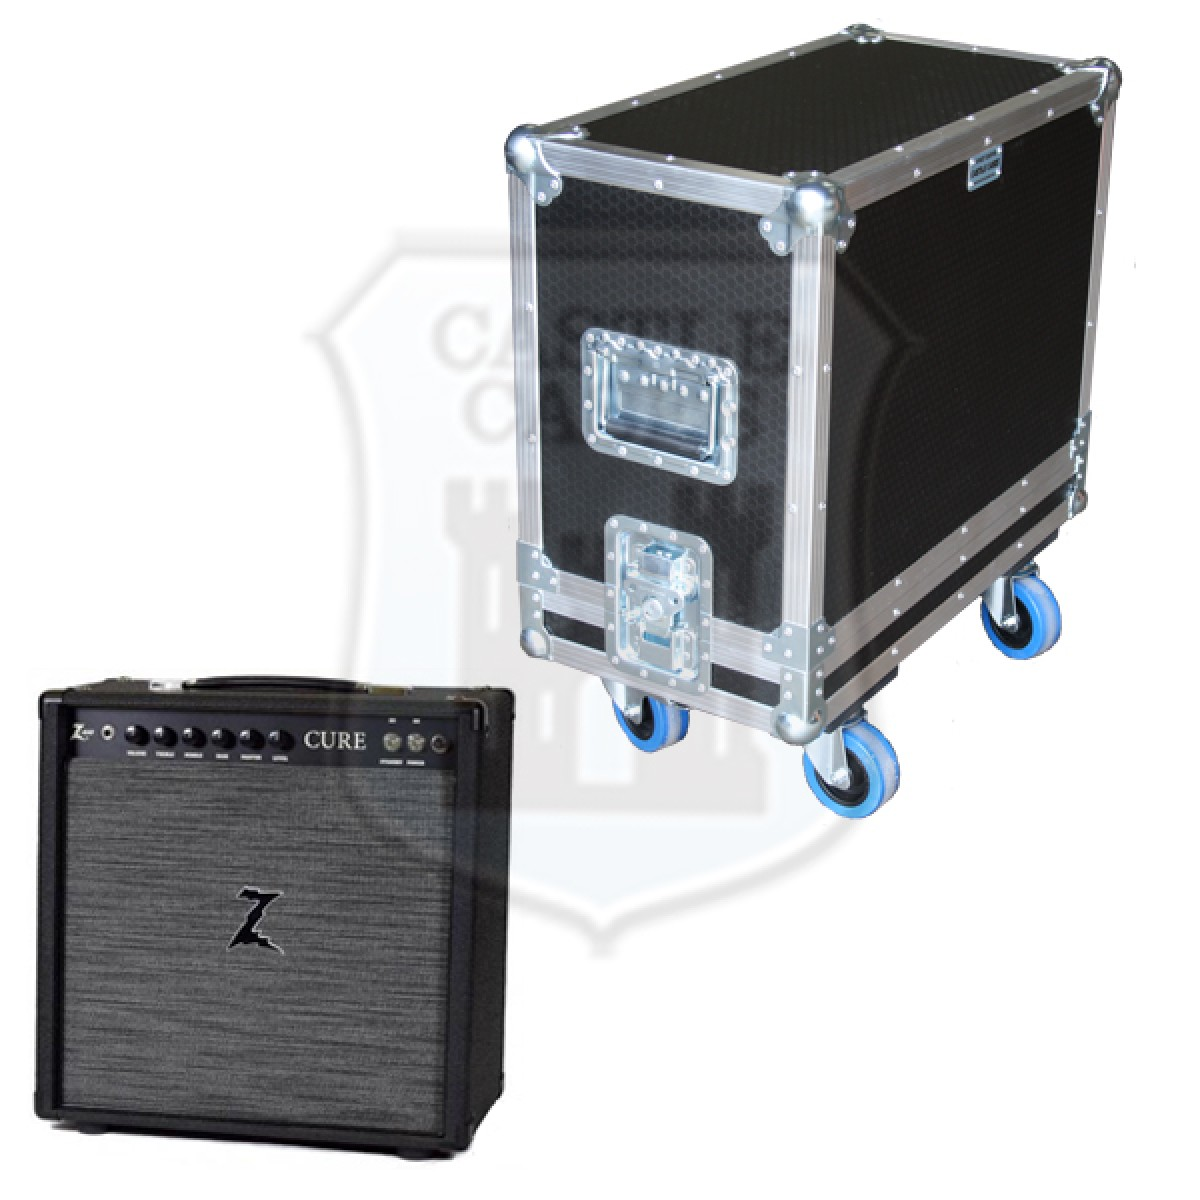 Dr.Z Cure 1x12 Flightcase